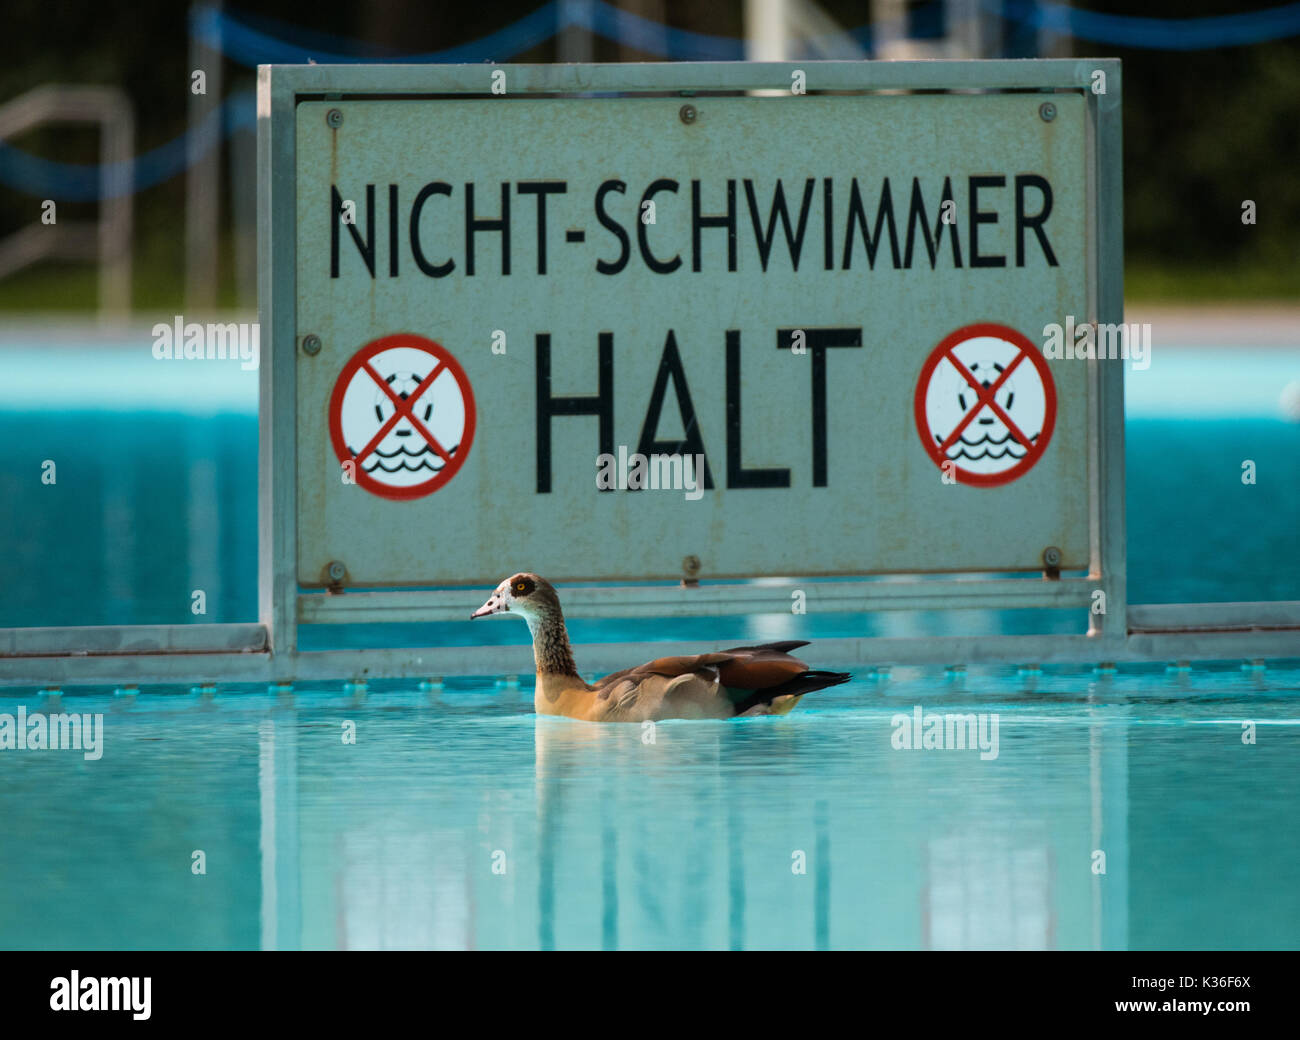 Swimming Pool Frankfurt Dpatop An Egyptian Goose Is Swimming In The Brentano Swimming